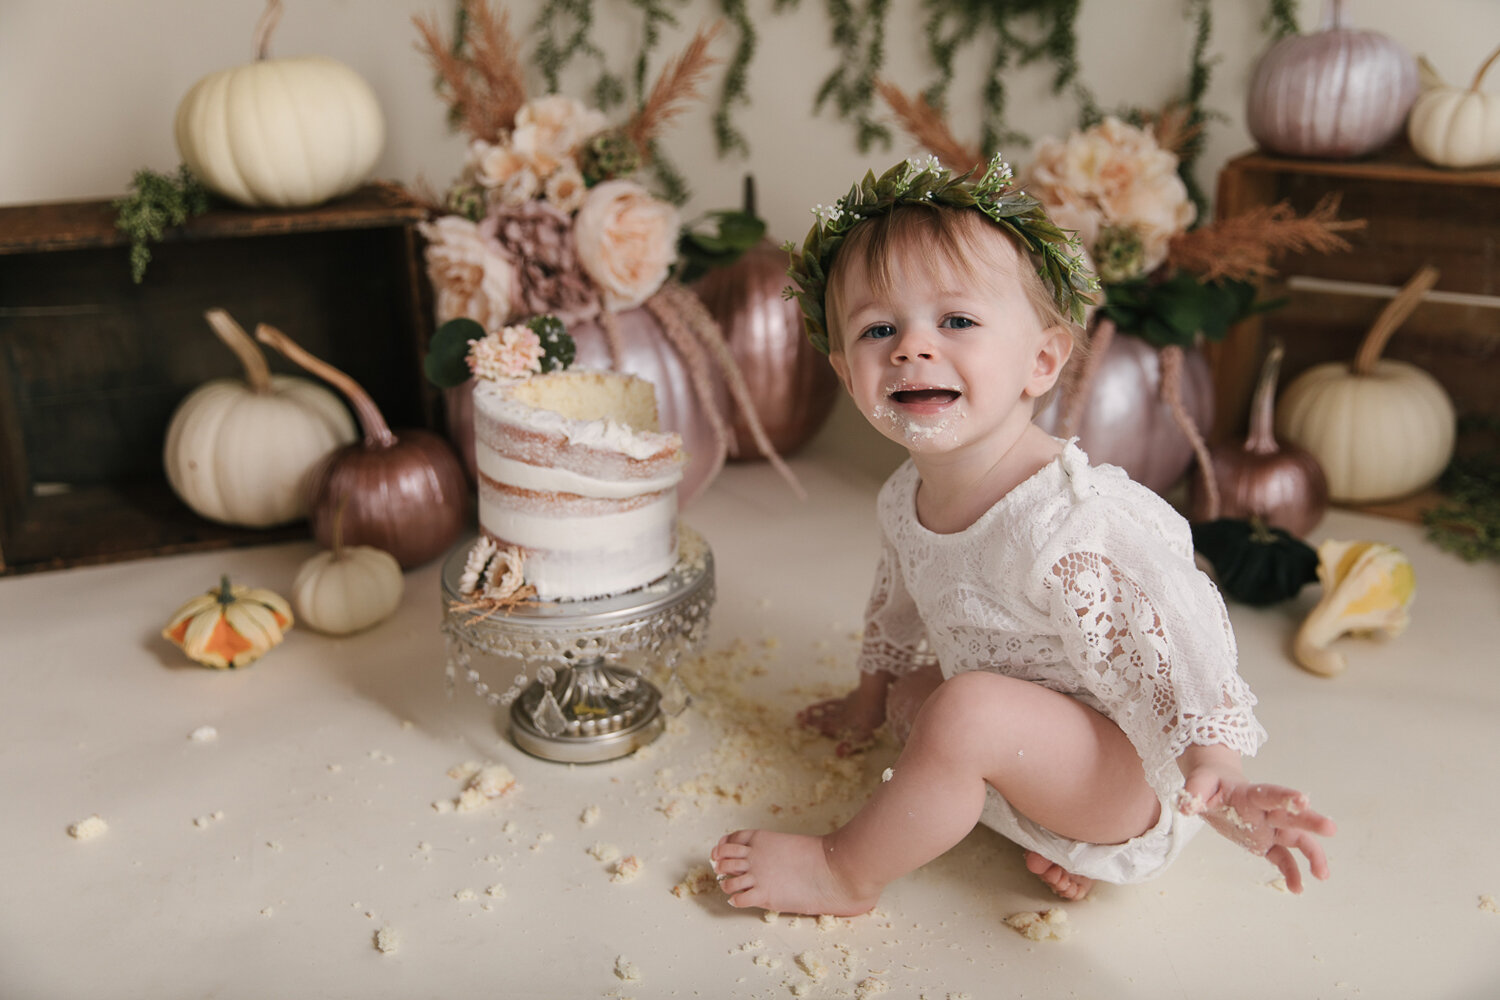 Baby_Girl_Birthday_Session_in_Studio_Smash_and_Splash_Photos_Pink_and_Cream_Little_Pumpkin_Theme_Baby_Girl_Frist_Birthday_Shoot_October_and_Fall_Soft_Color_Pallet_by_Baby_Photographer_Christie_Leigh_Photo_in_Cortland_Ohio-6.JPG